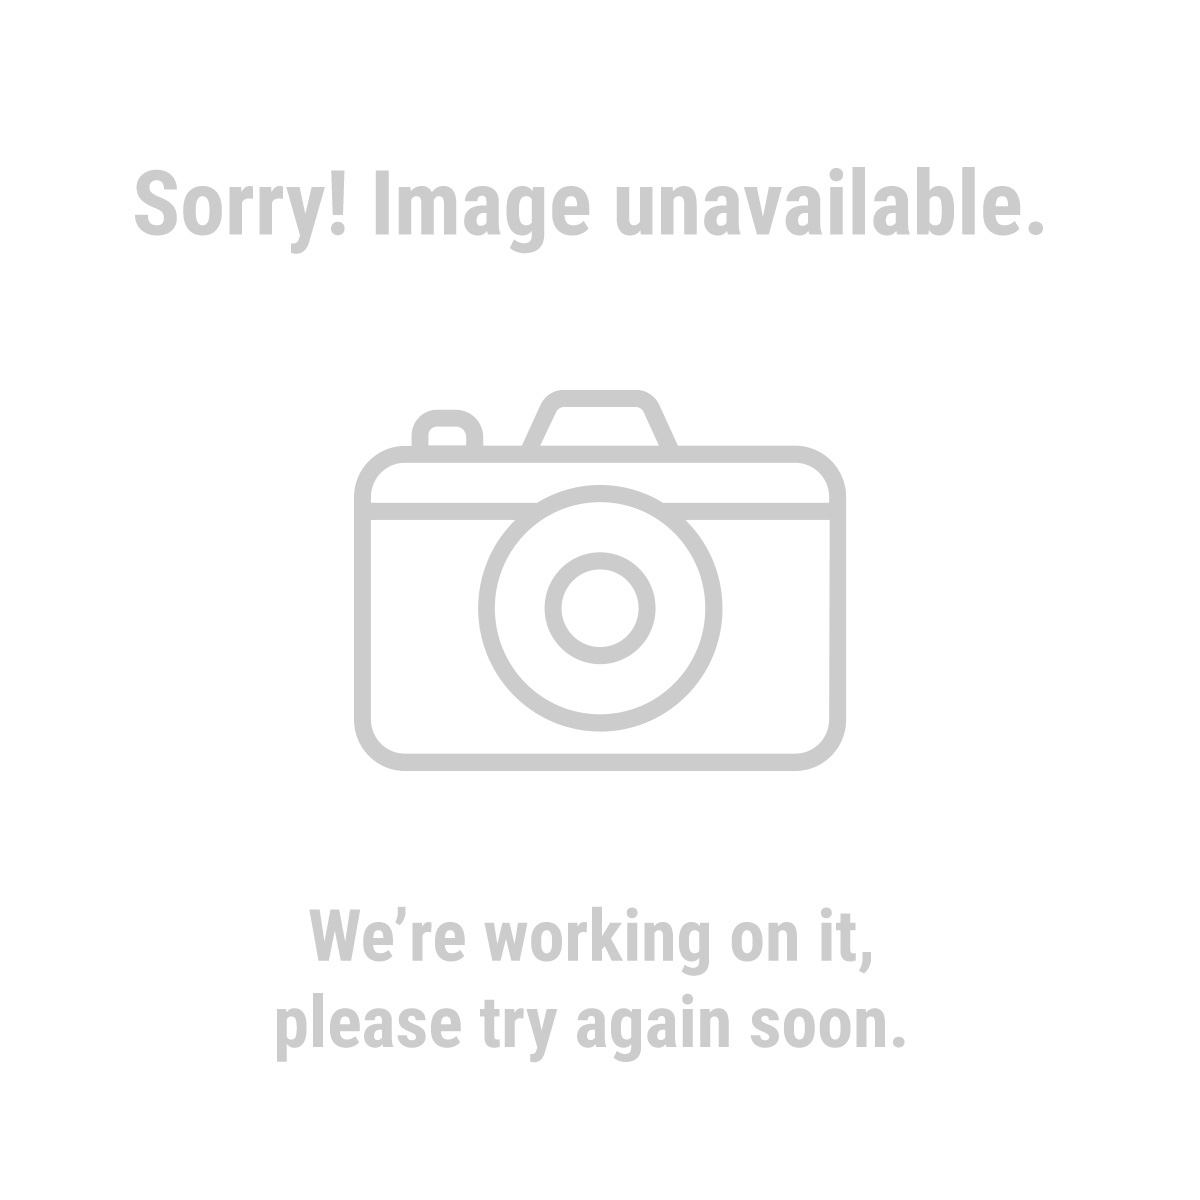 Central-Machinery 65162 Towable Ride-On Trencher